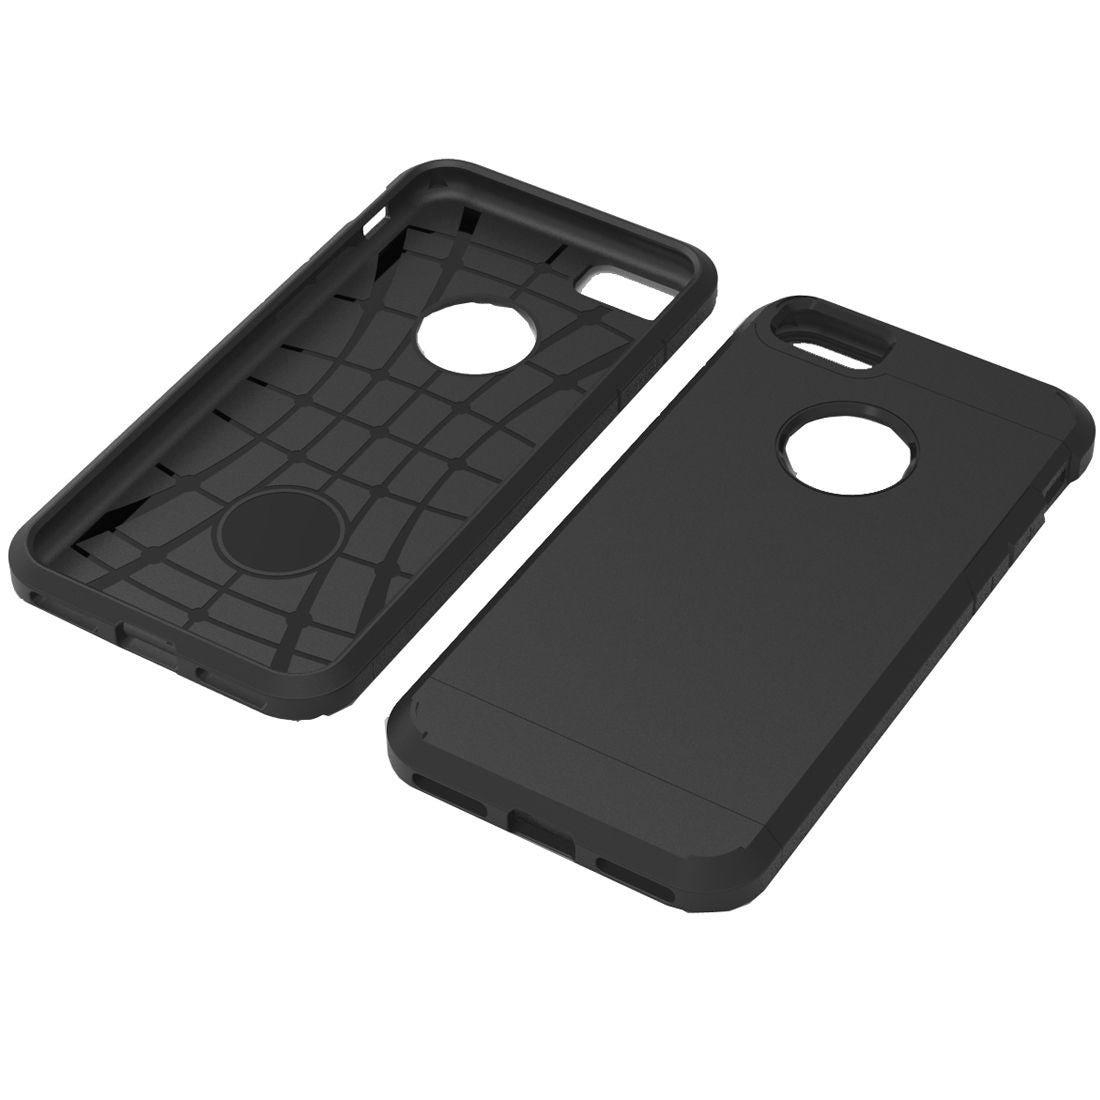 Tuff-Luv - Twin Armour TPU Case for the Apple iPhone 7 Rugged South Africa